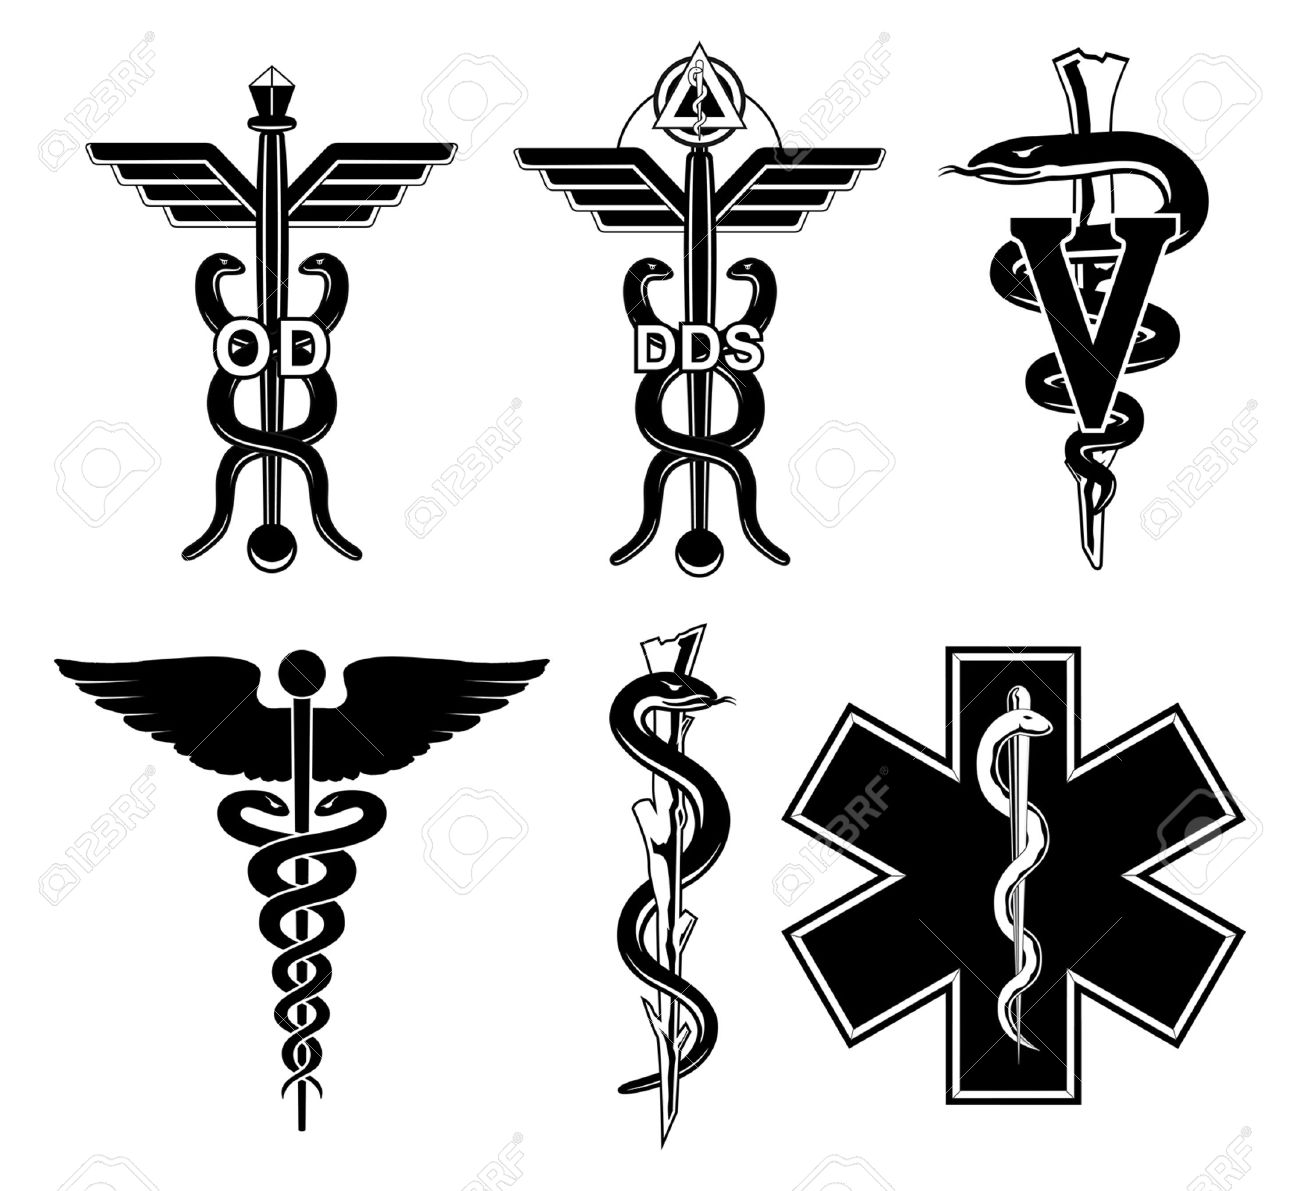 Medical Symbols-Graphic is an illustration of six medical symbols. Optometry, dentistry, veterinary, Caduceus, Rod of Asclepius, and the Star of Life. - 66885742